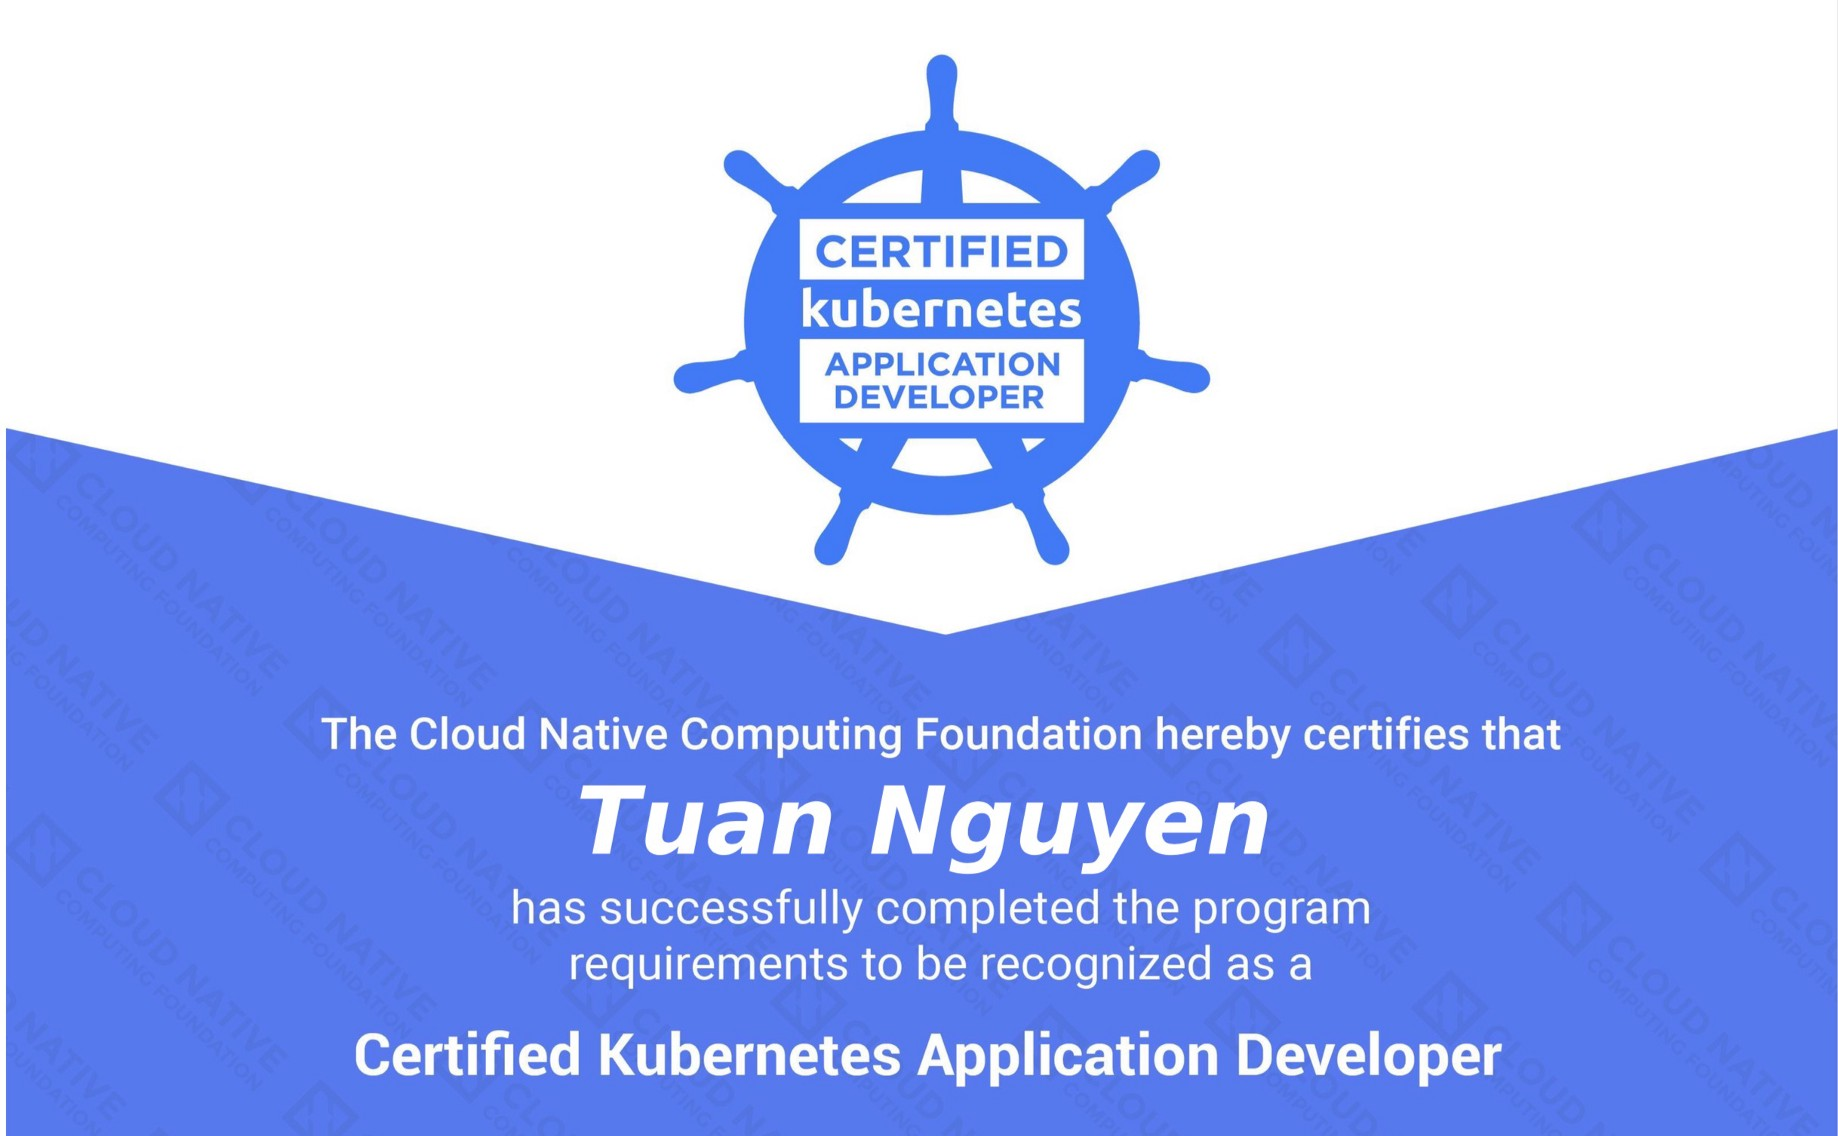 Certified Kubernetes Application Developer (CKAD) in a nutshell